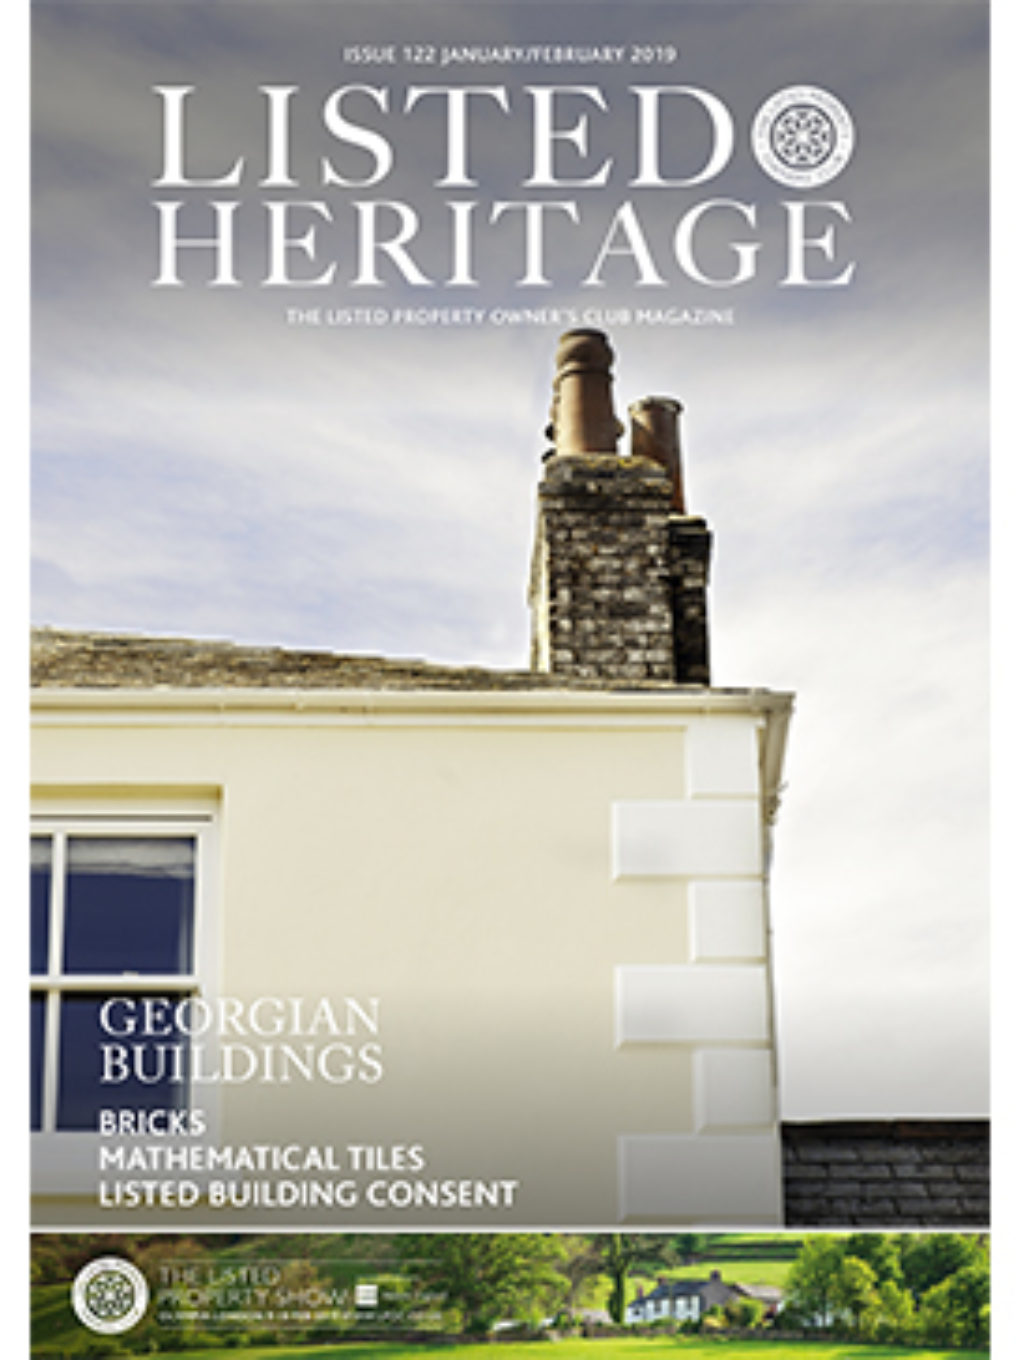 Listed Heritage January 2019